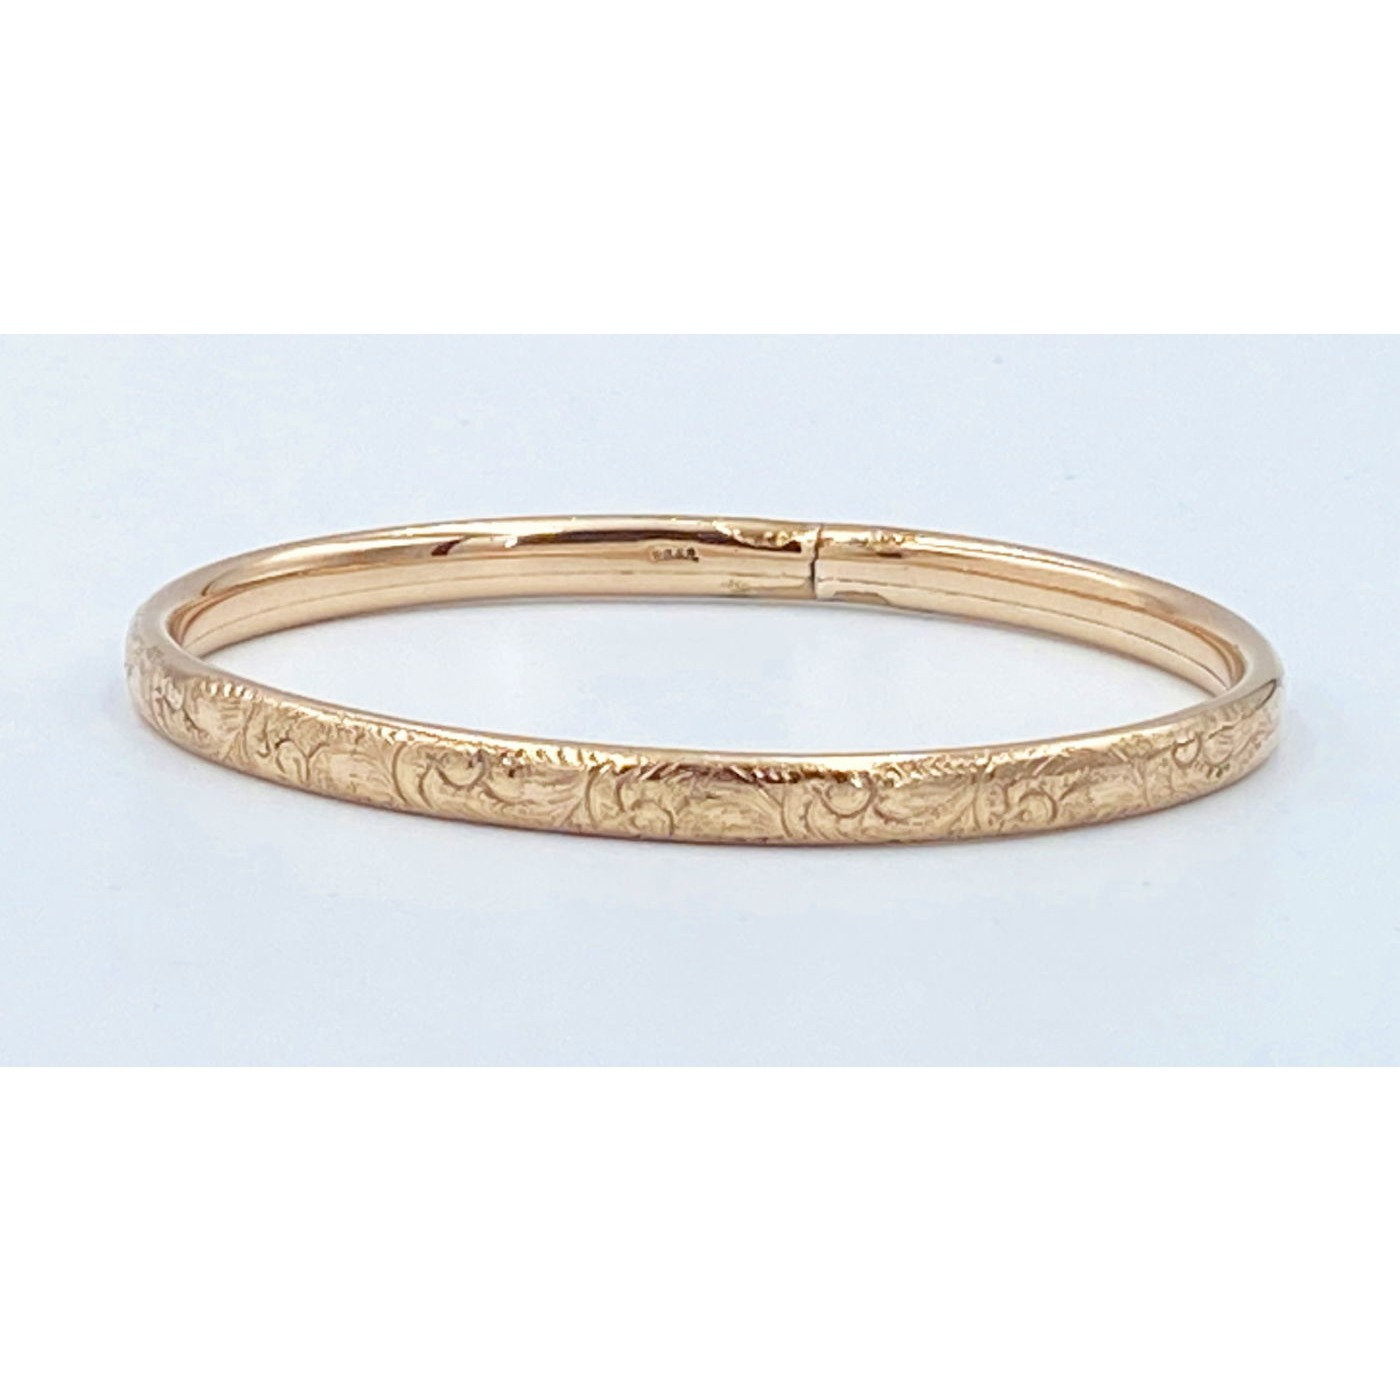 Unusual Solid Unhinged True Bangle - Highly Detailed